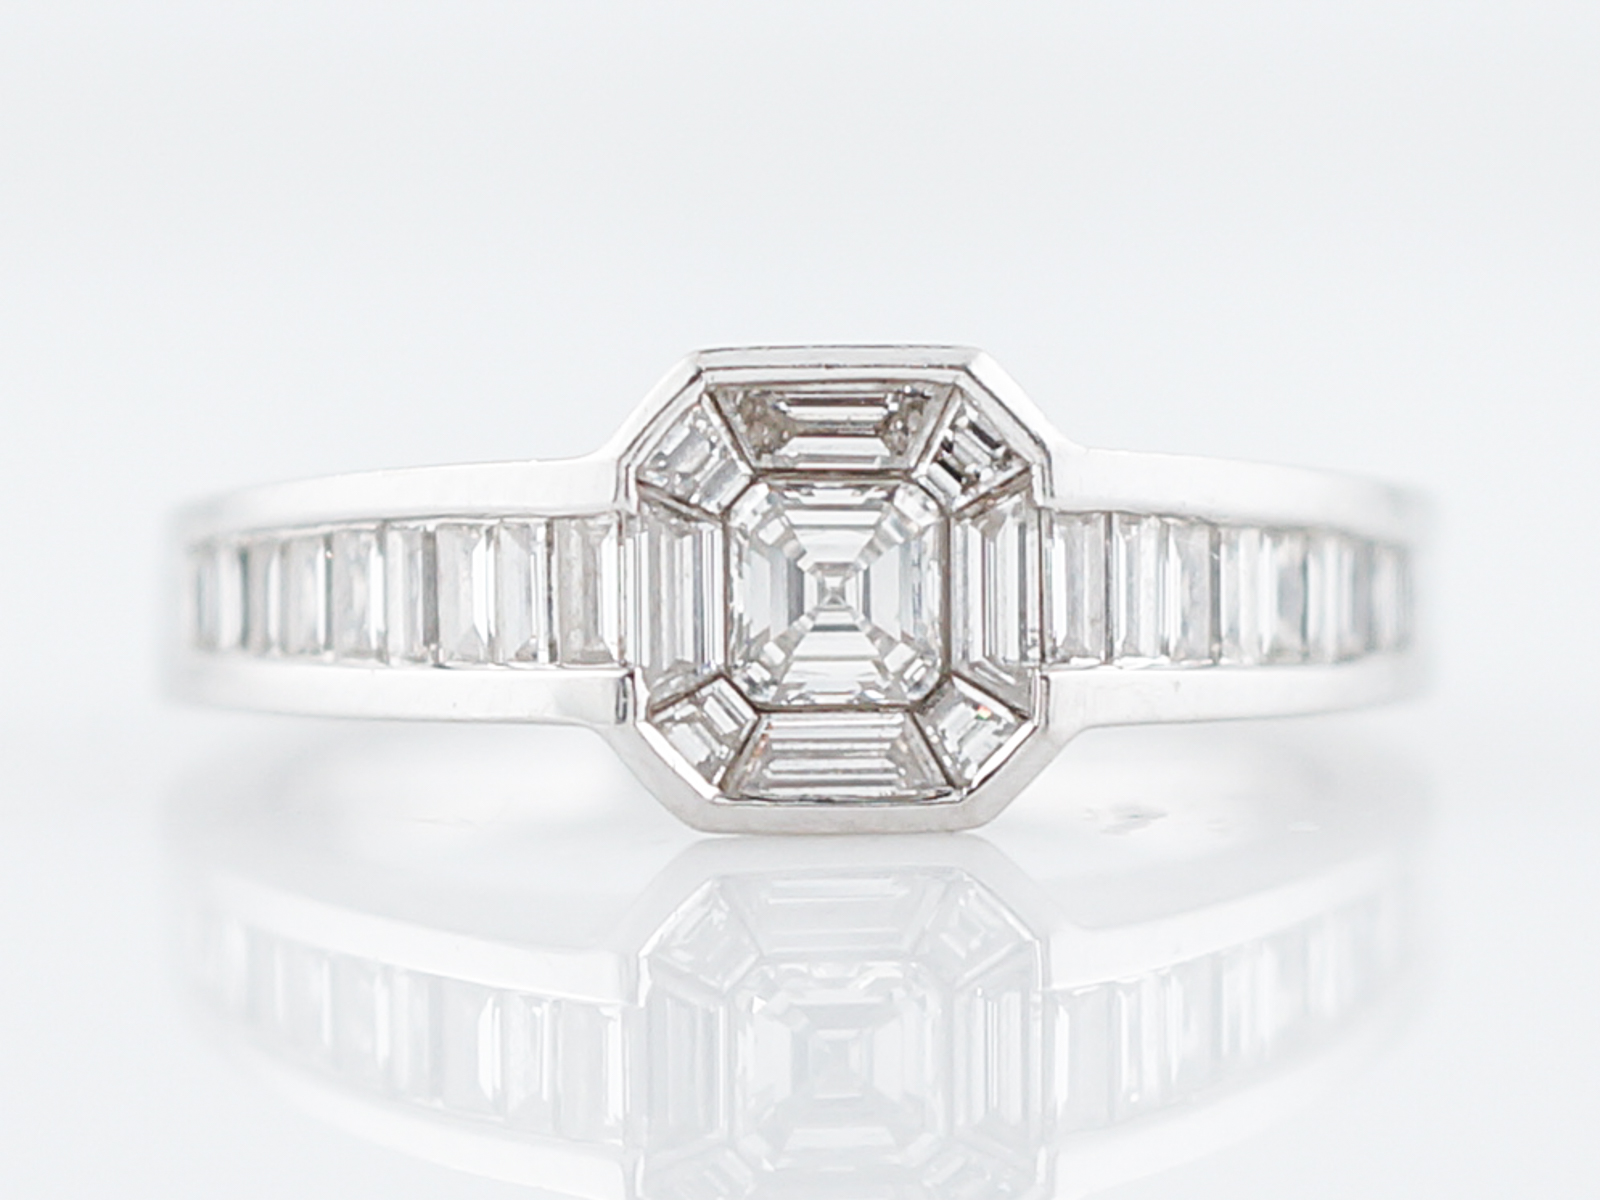 chicago company pierce halo marshall diamond ring carat rings asscher product engagement cut